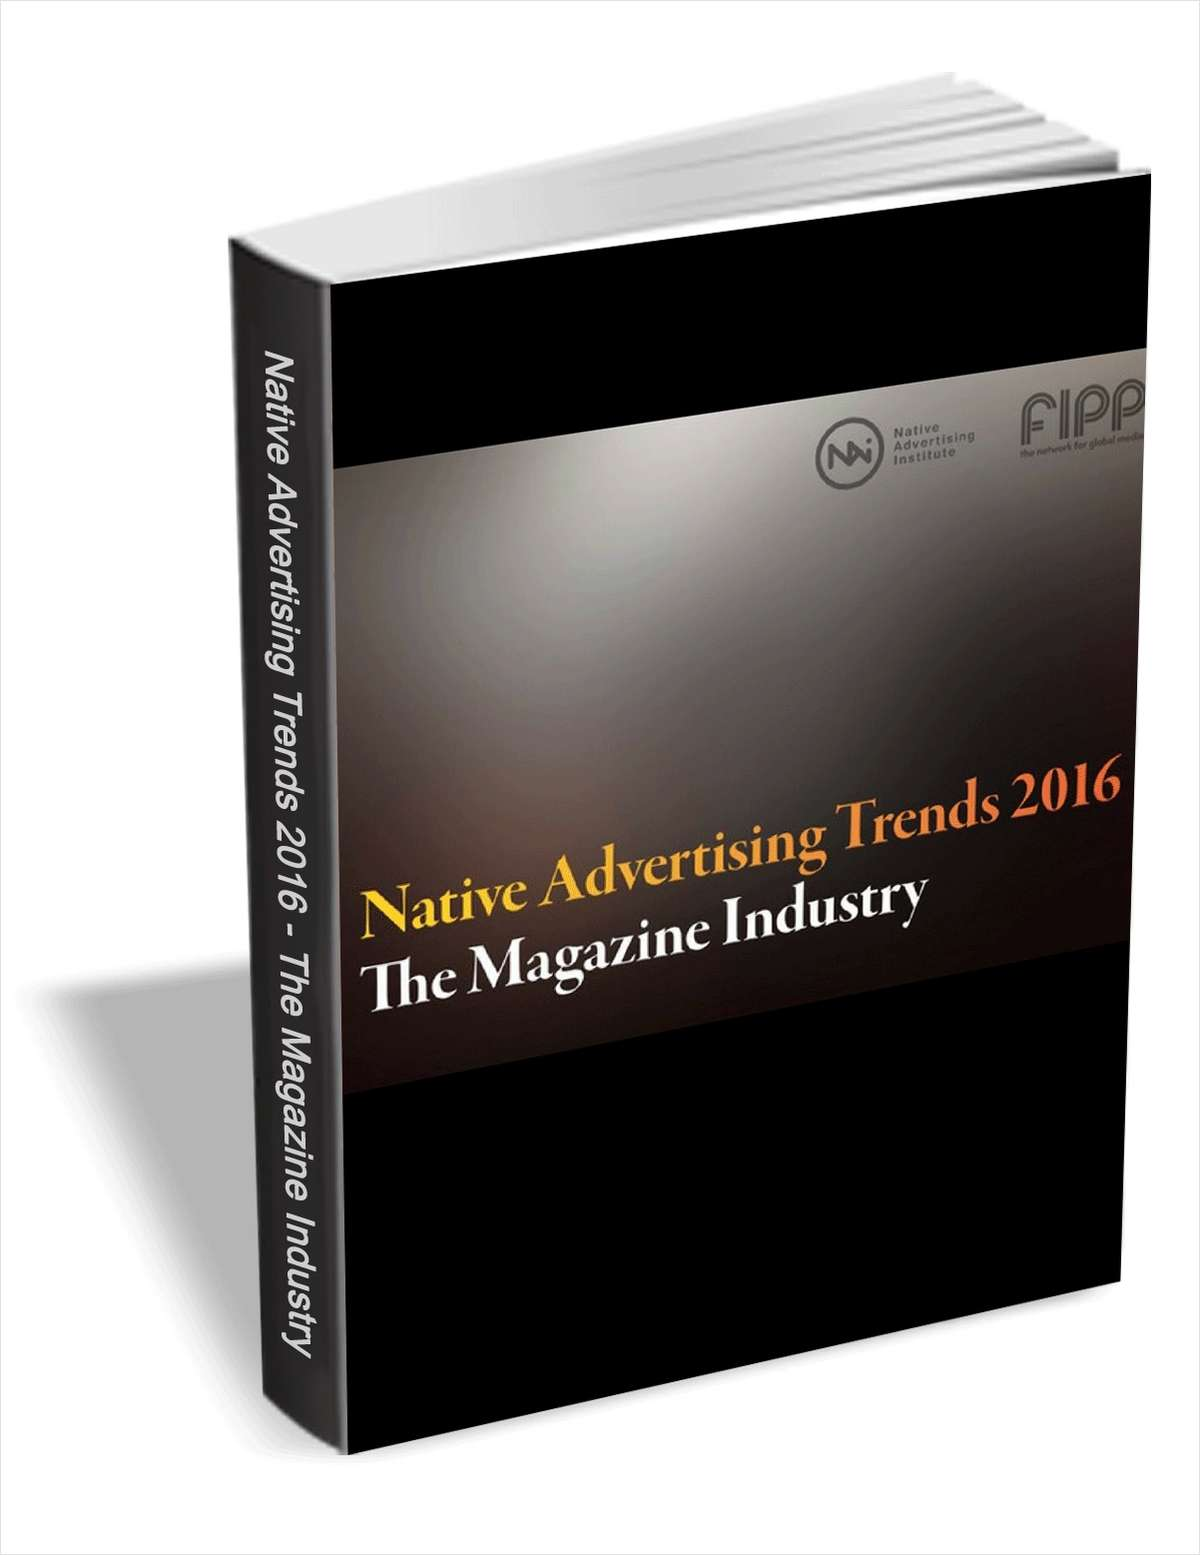 Native Advertising Trends 2016 - The Magazine Industry